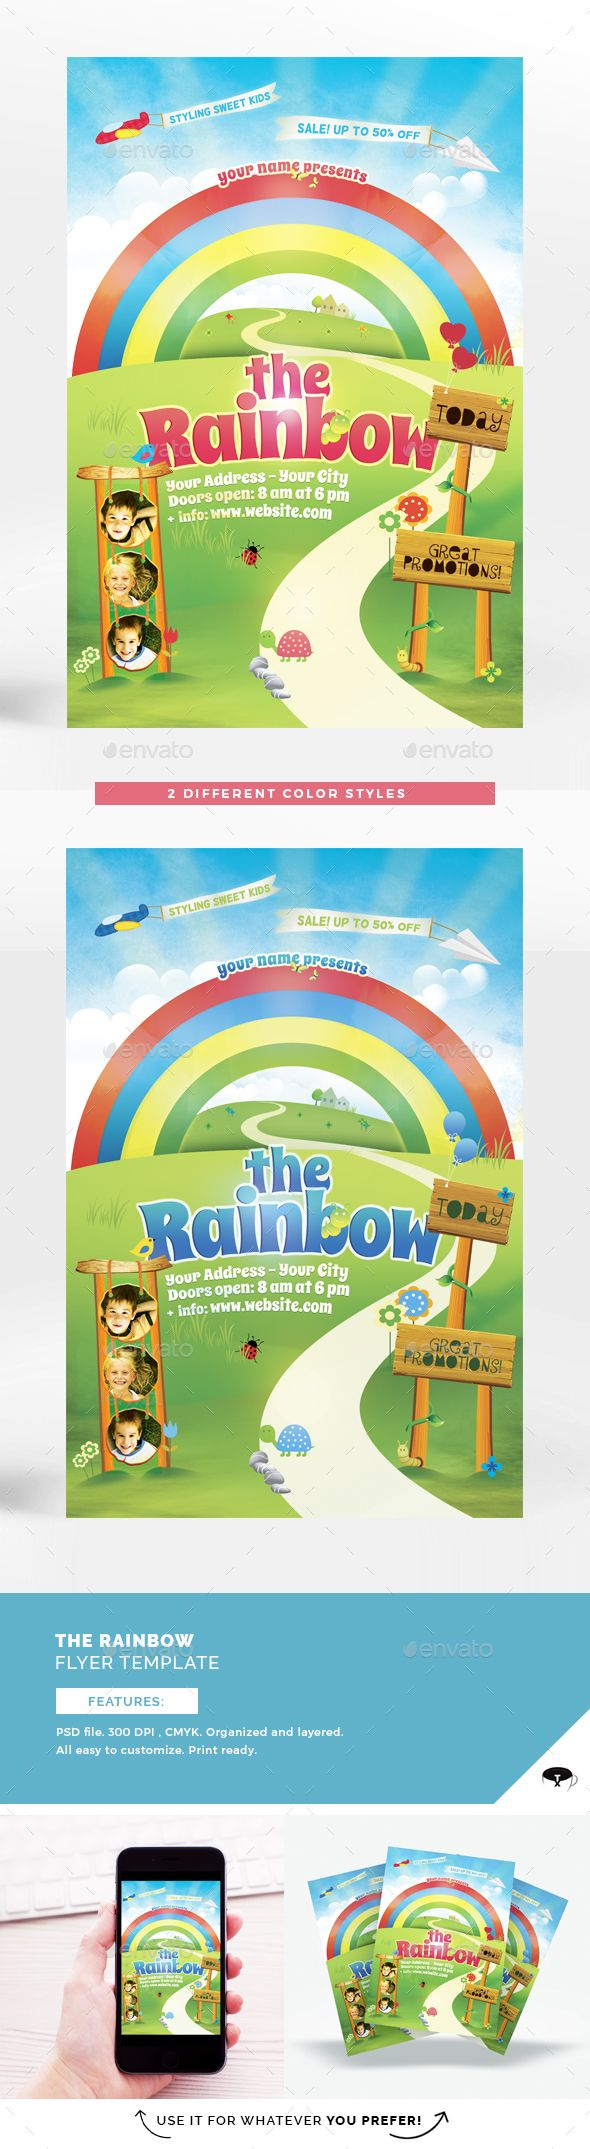 The Rainbow Flyer Template Flyer Template Flyer Kids Invitations